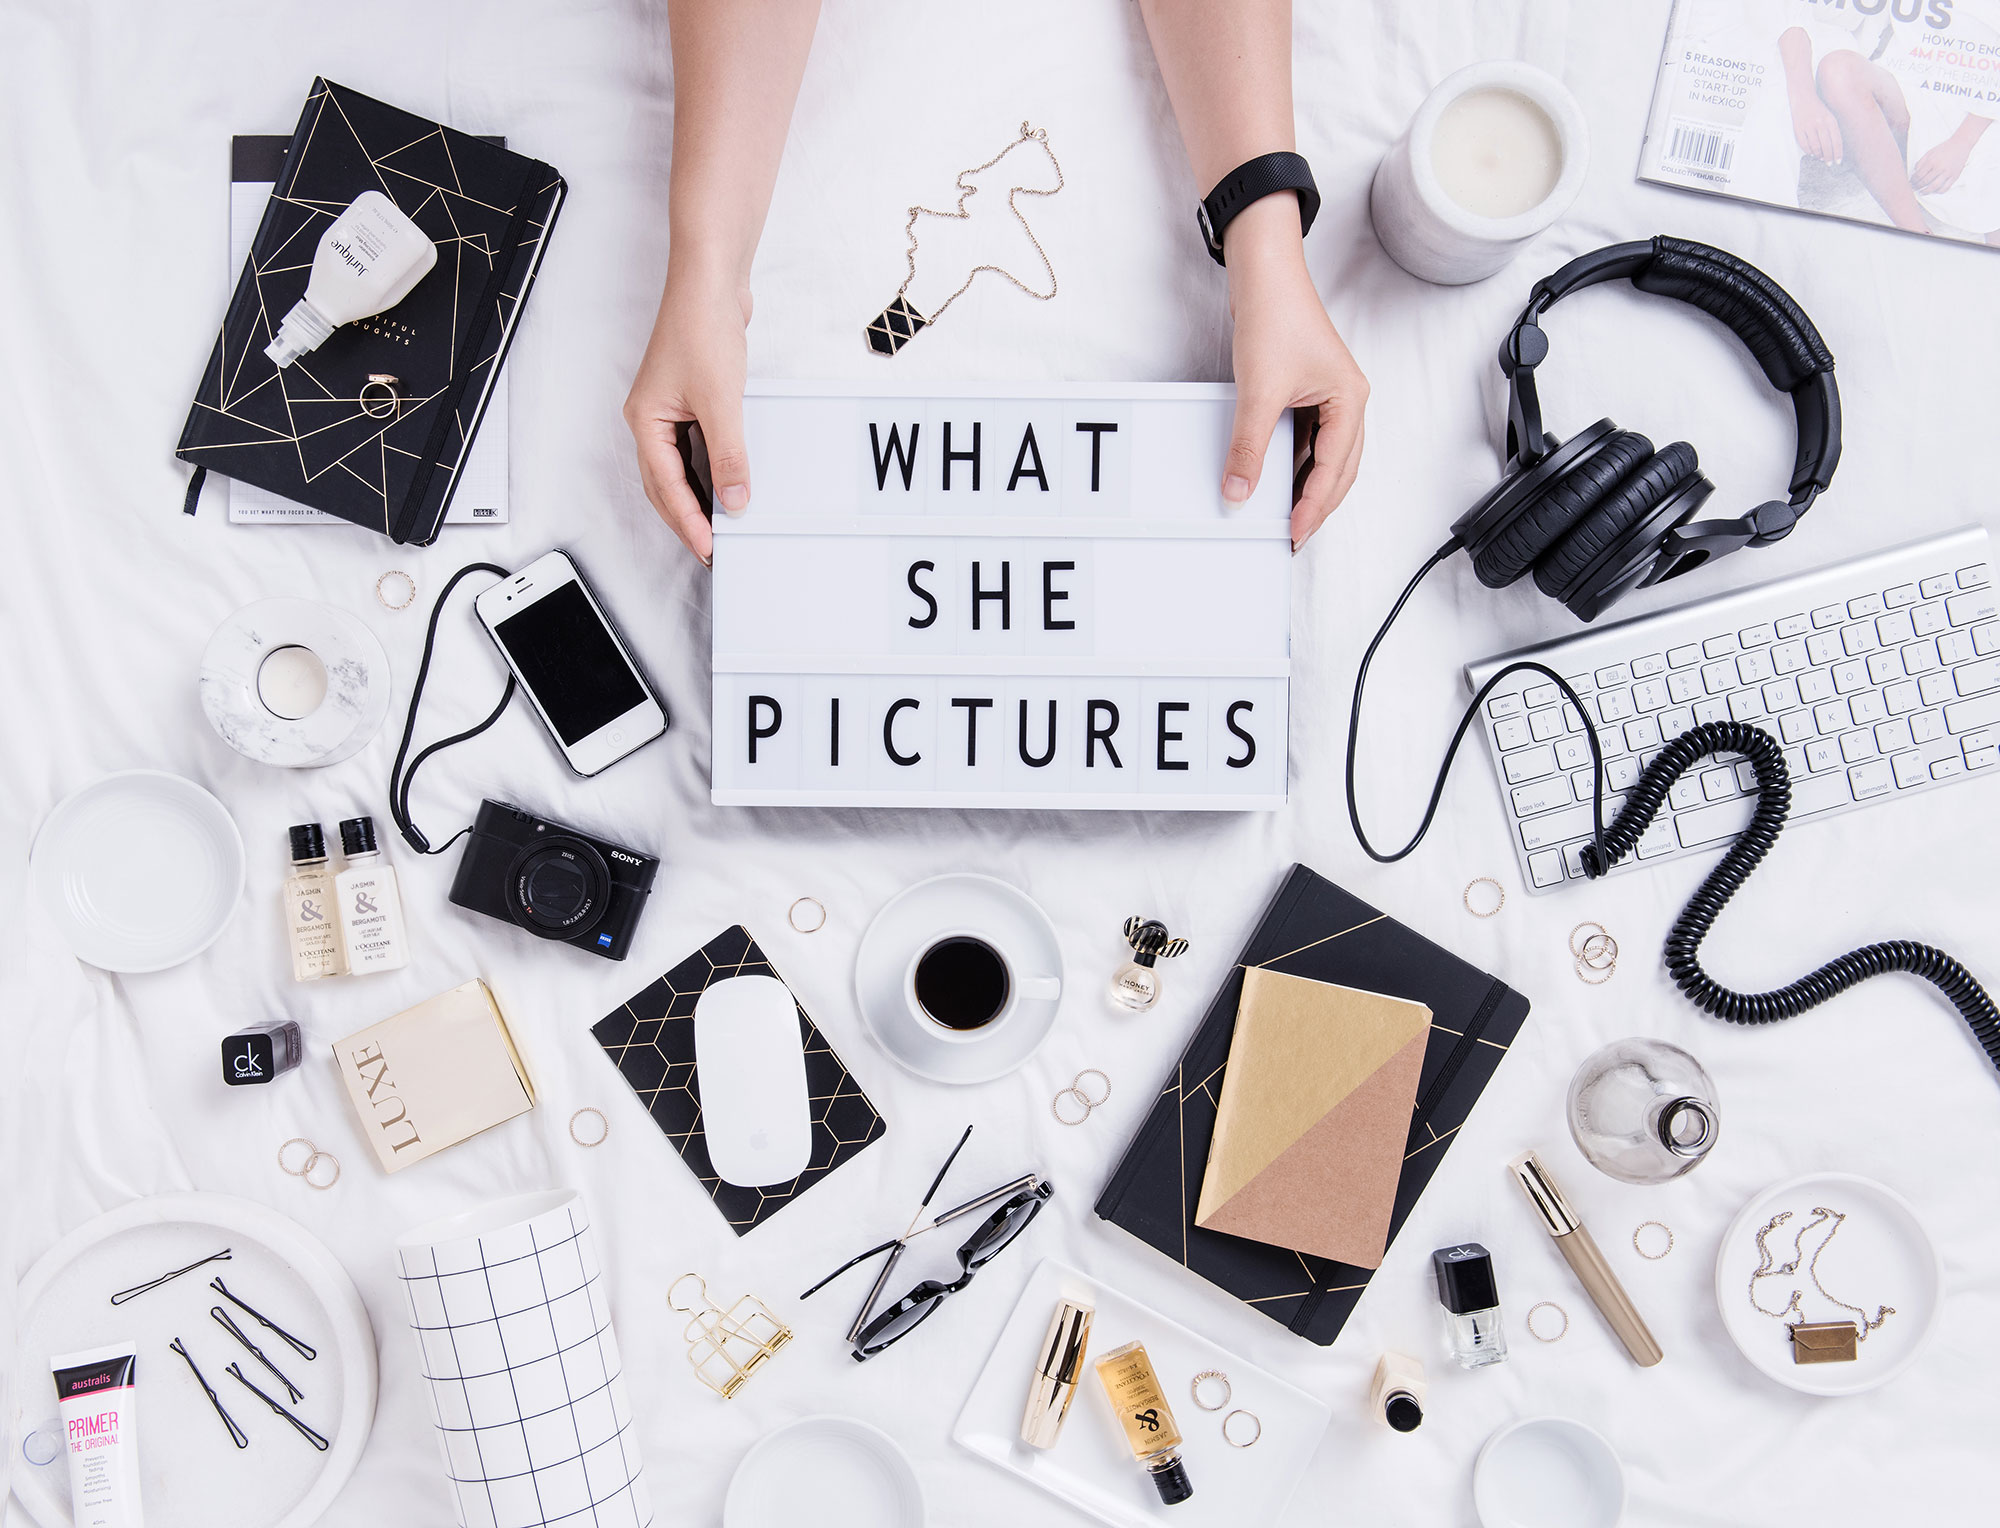 What She Pictures